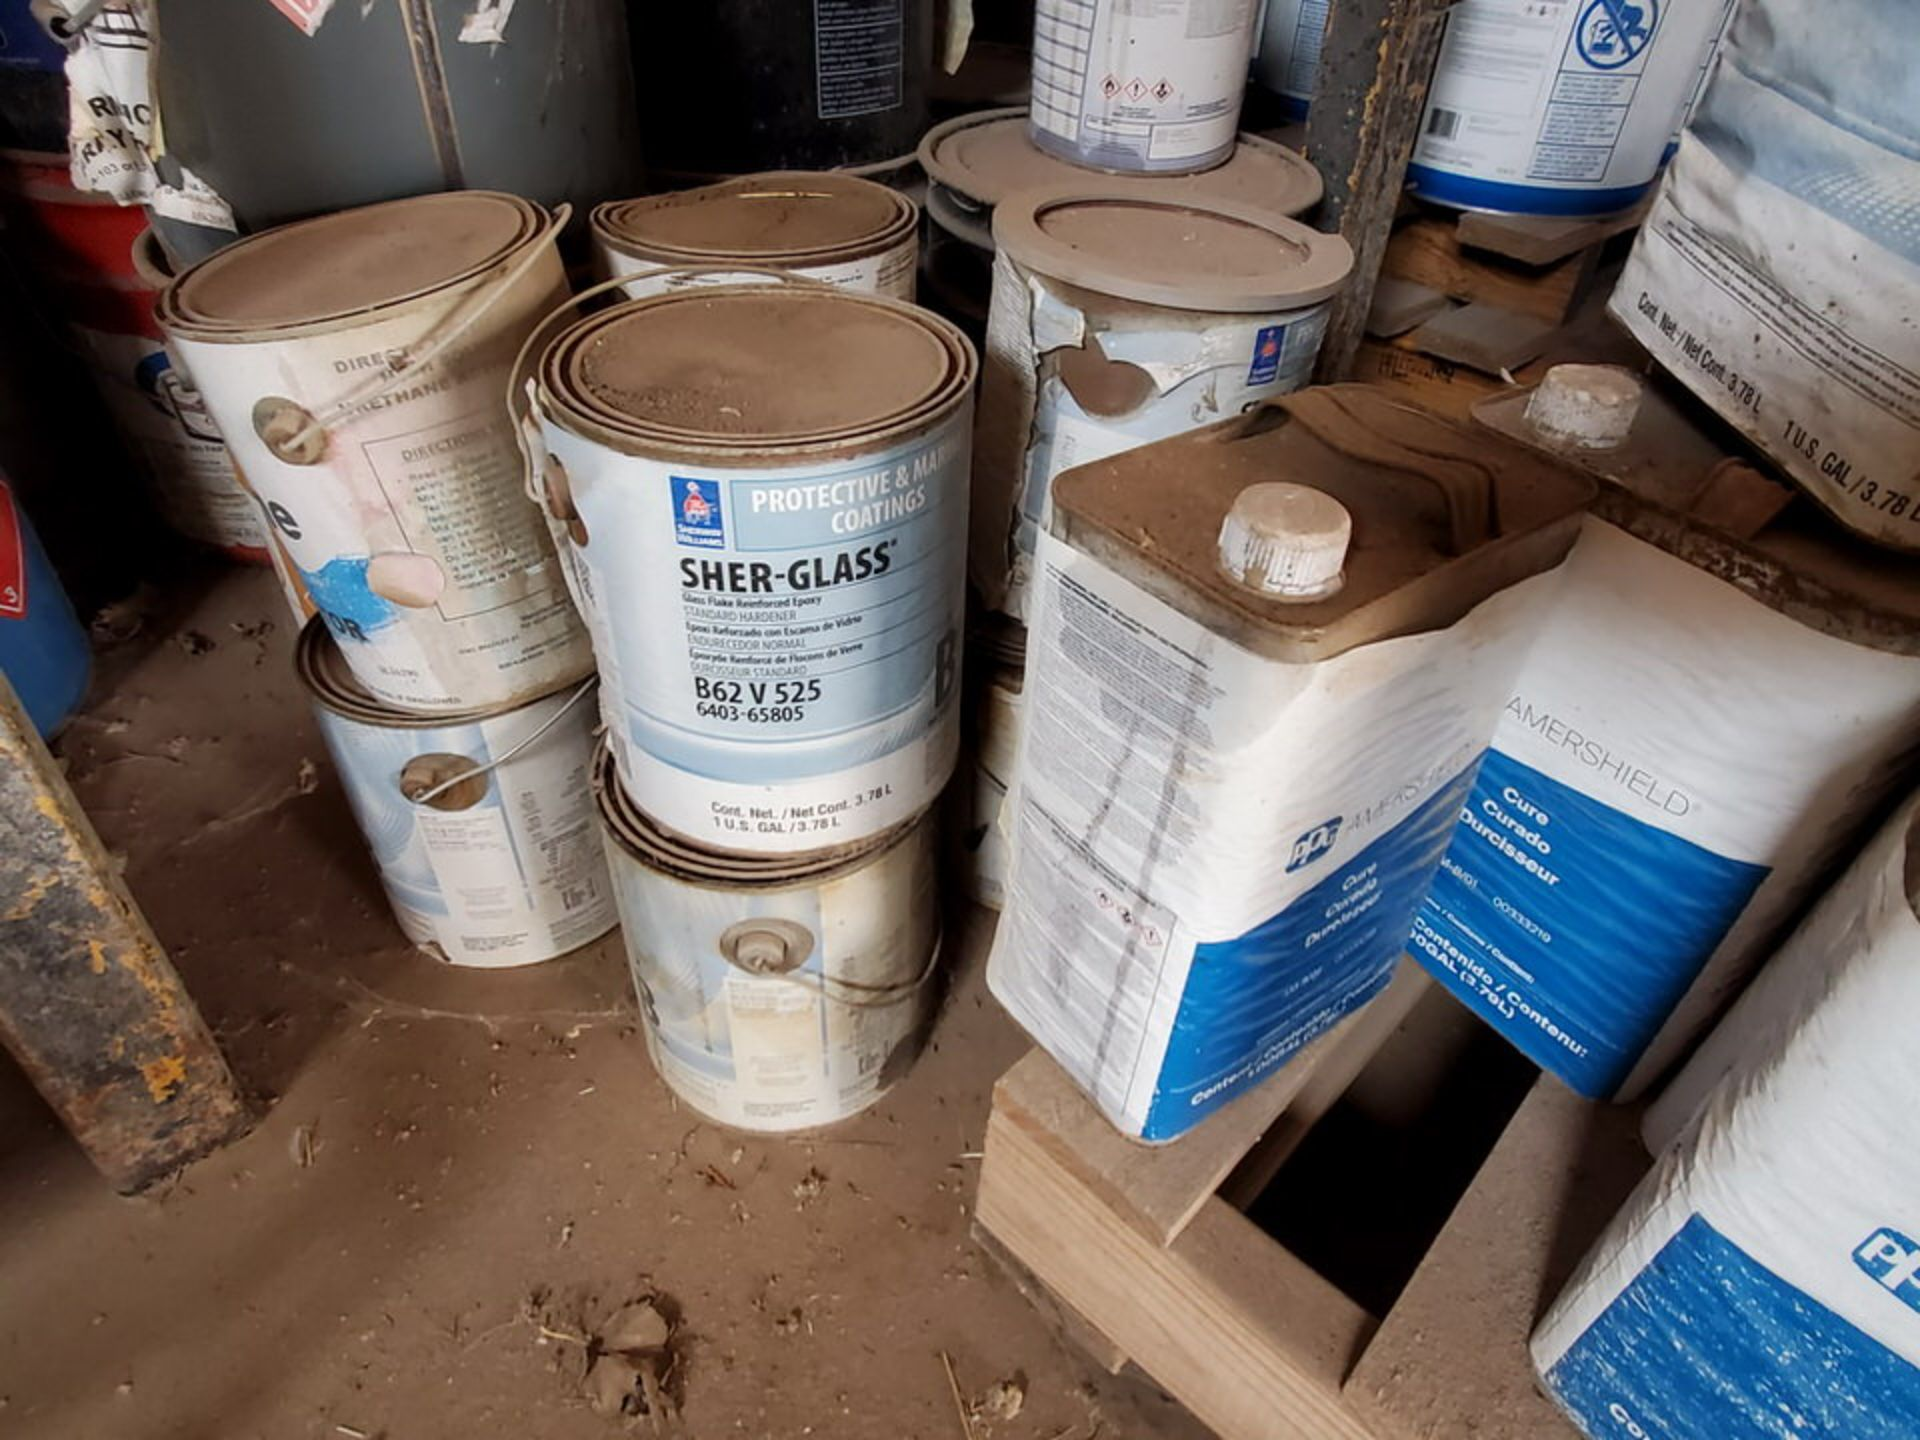 Assorted Paints & Marine Coatings Mfg's: PPG, Intl. & Other - Image 4 of 10